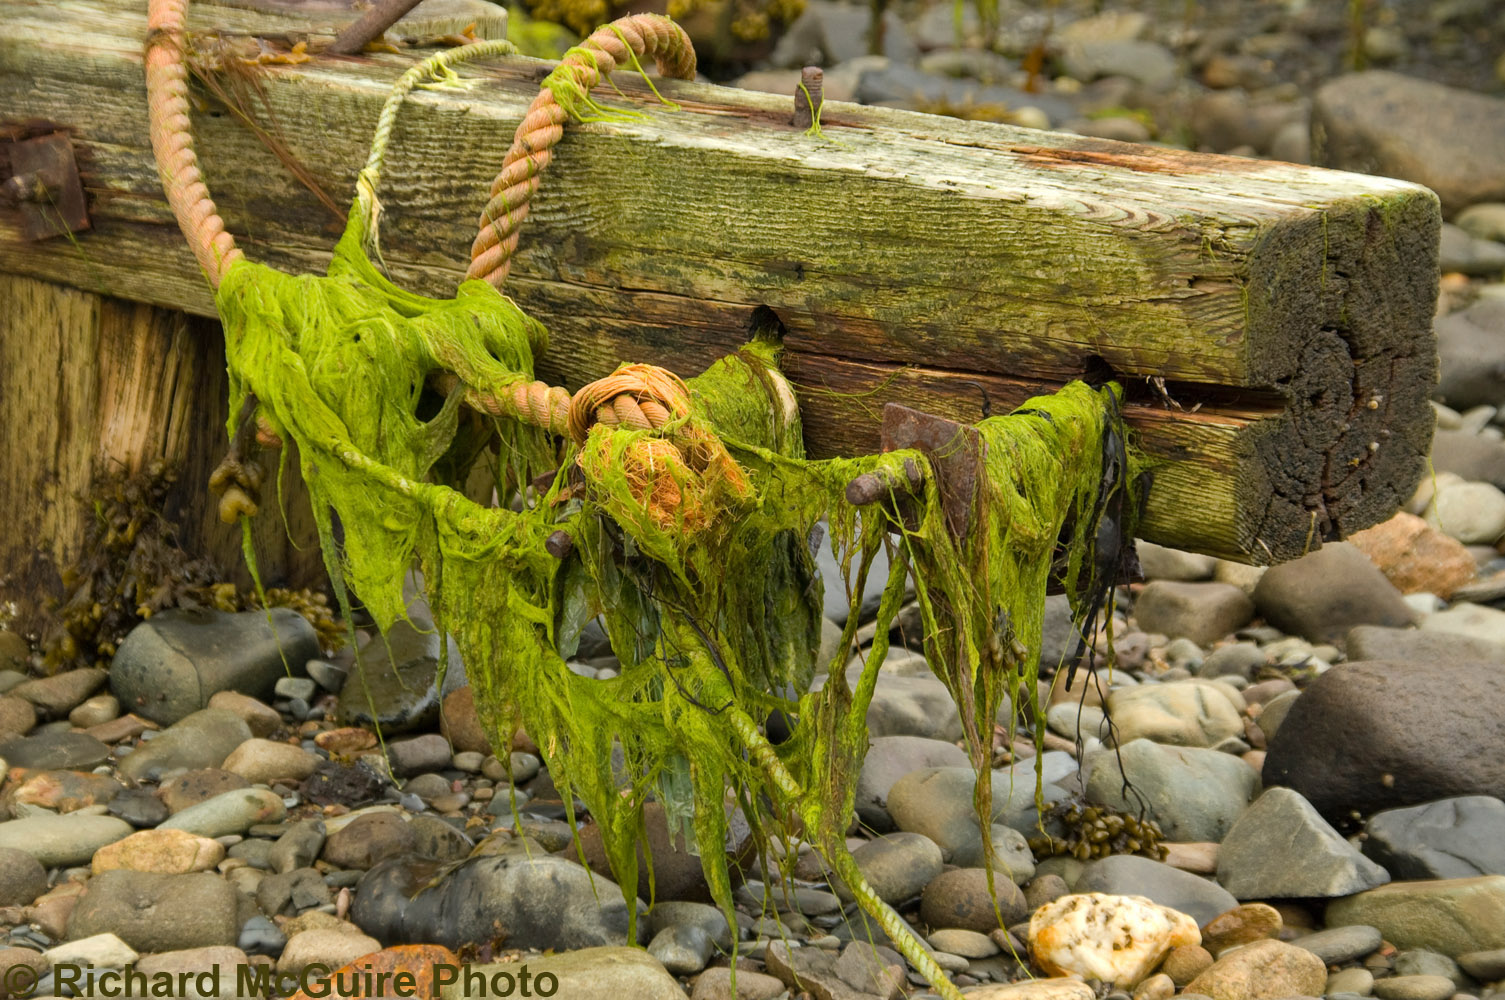 Seaweed and wire cable, Meteghan harbour, Nova Scotia